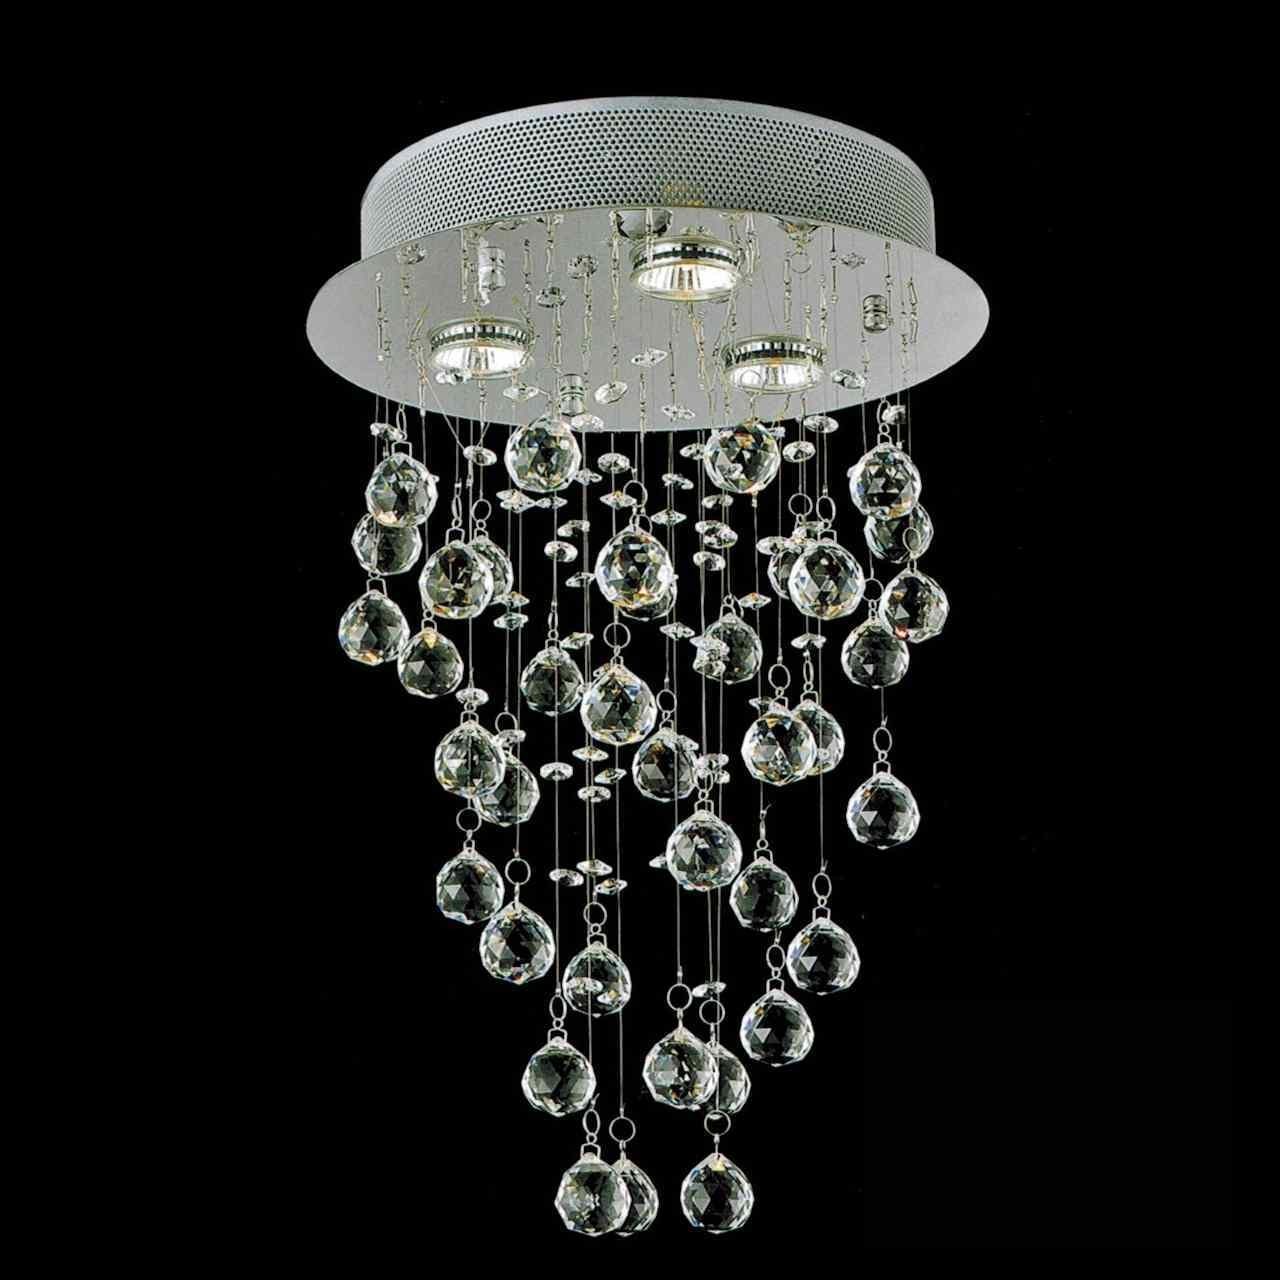 Brizzo Lighting Stores 18 Raindrops Modern Foyer Crystal Round Pertaining To Mirror Chandelier (Image 4 of 15)